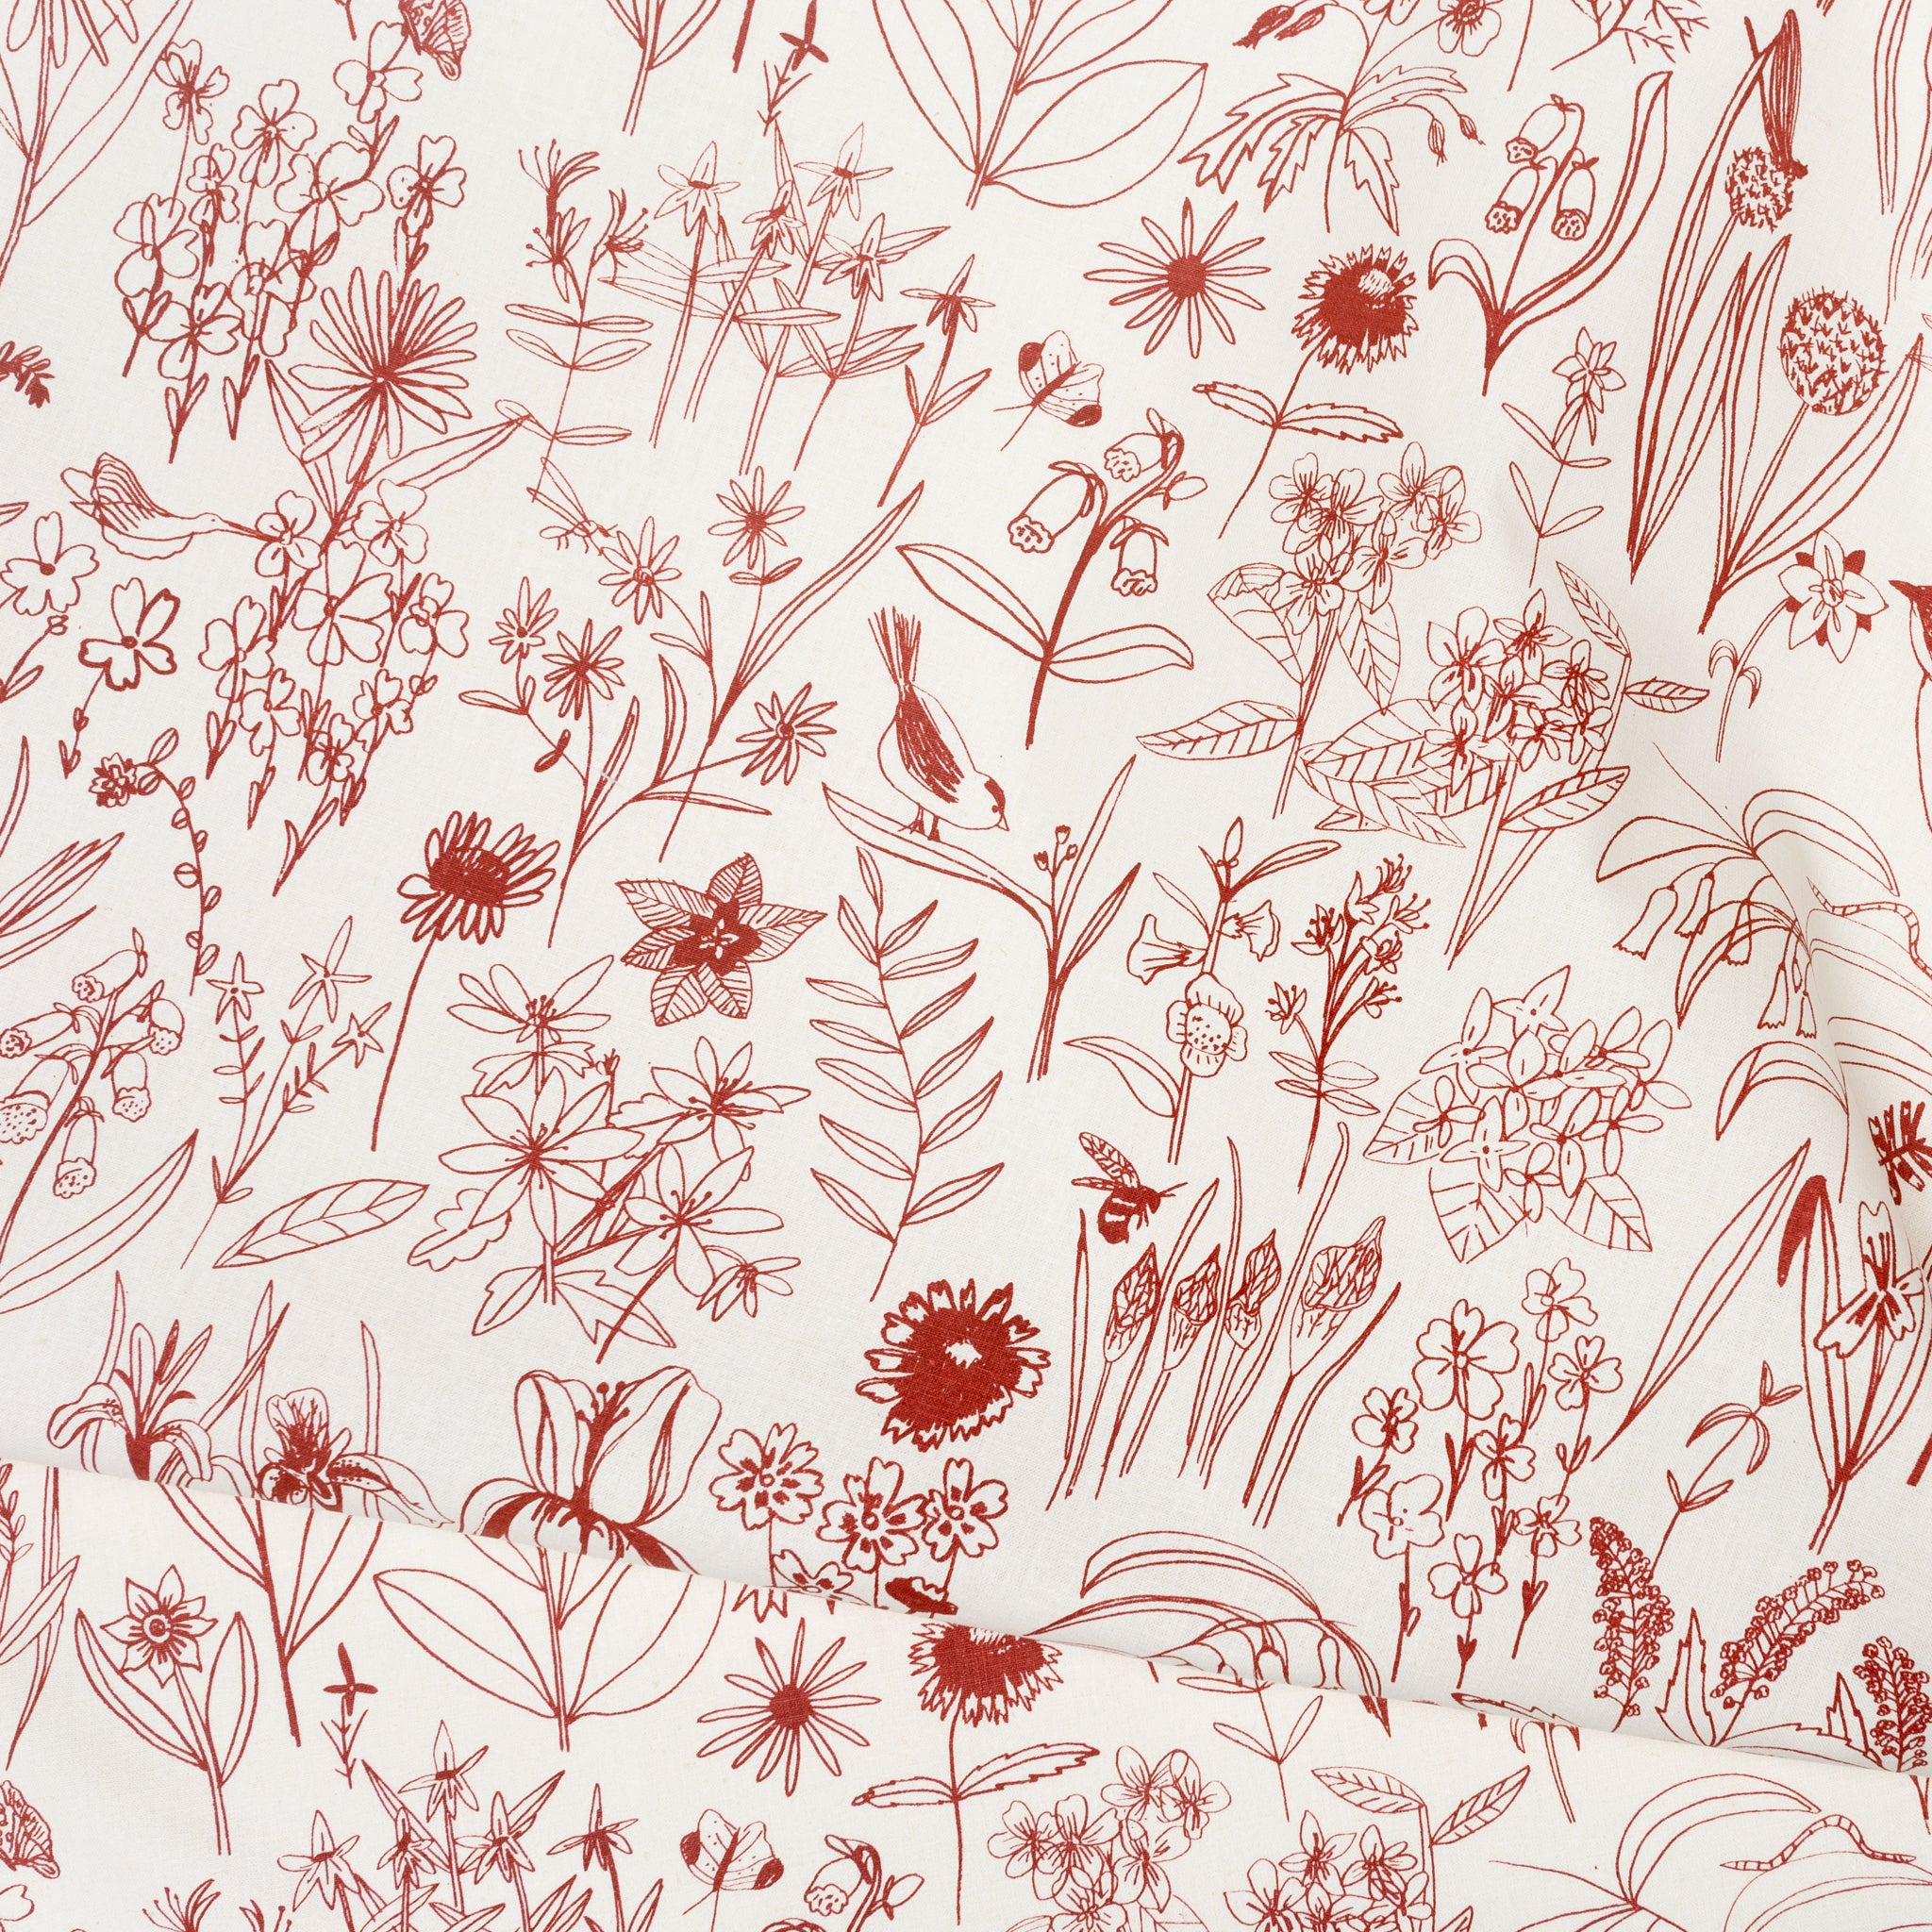 Fabric yardage screen printed with bird and botanical illustrations